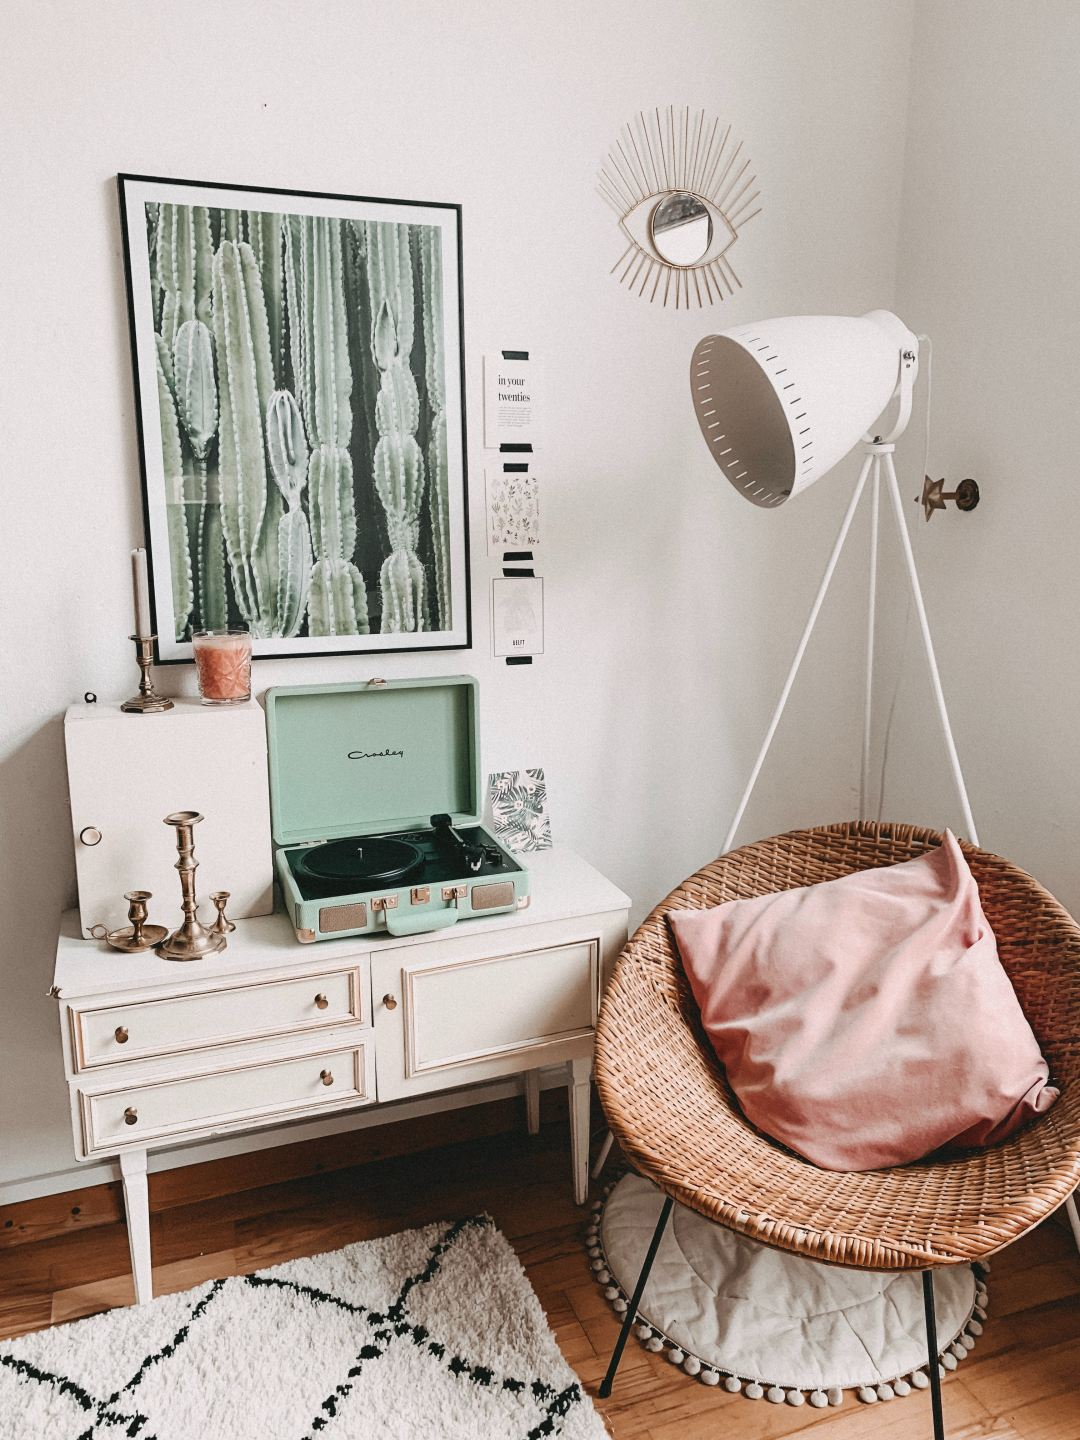 6 Things Dorm Life Taught Me About My Design Sense